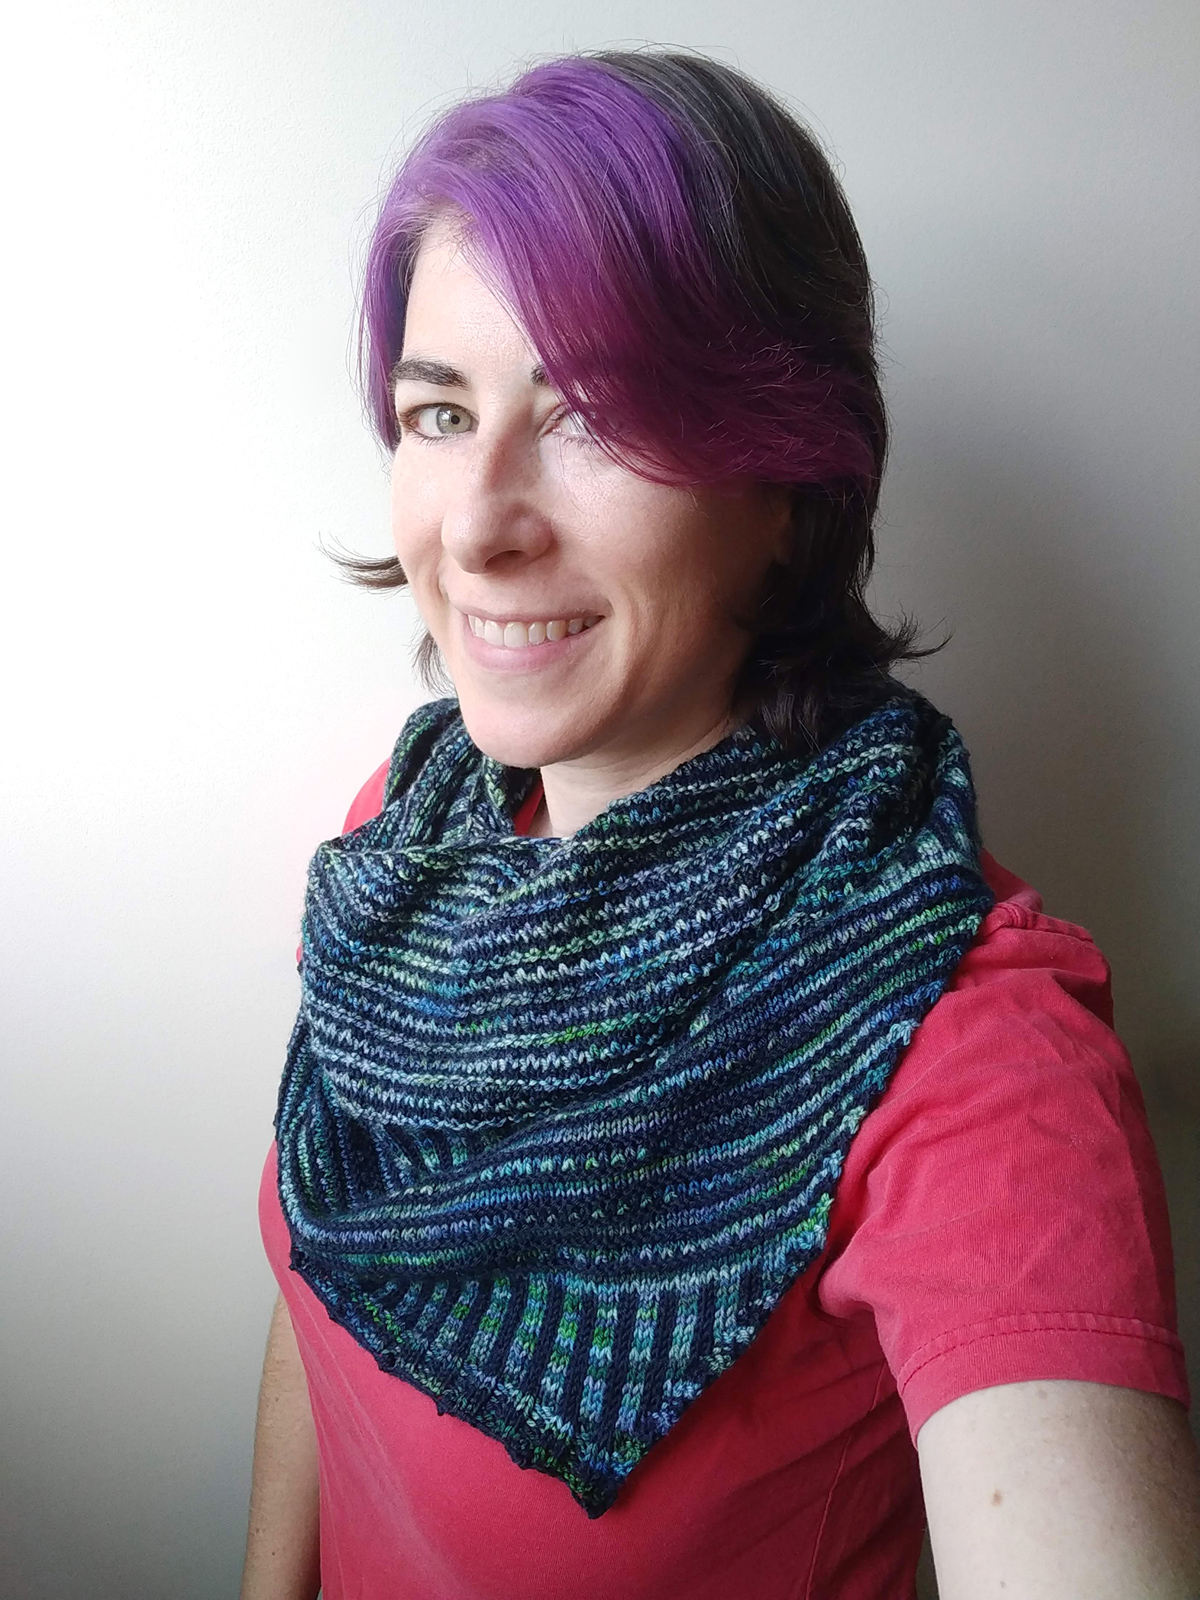 Pirate modeling the Breathe and Hope shawl